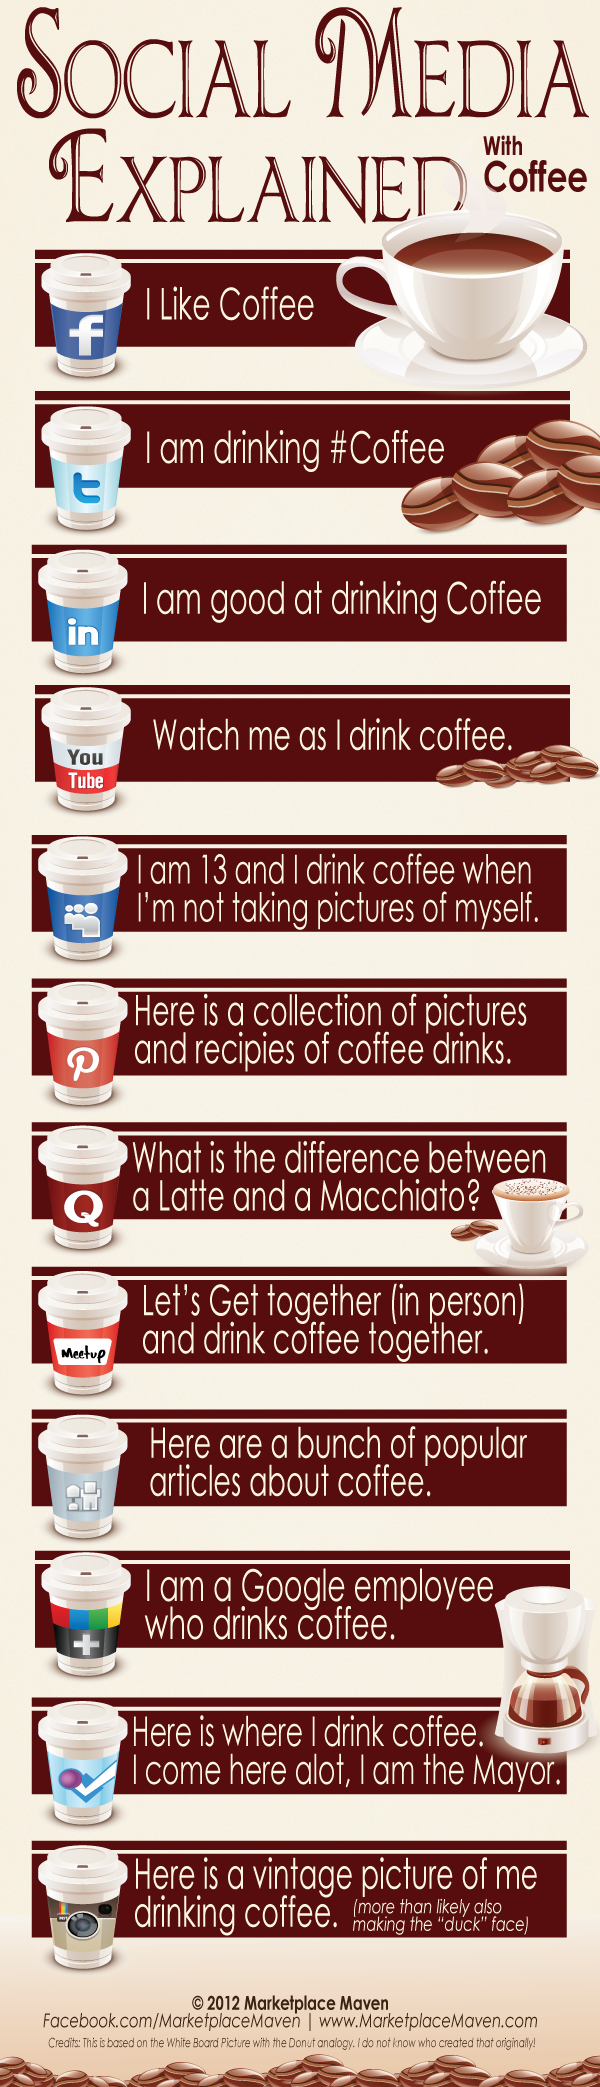 Social Media Explained With Coffee [INFOGRAPHIC] #socialmedia #infographic